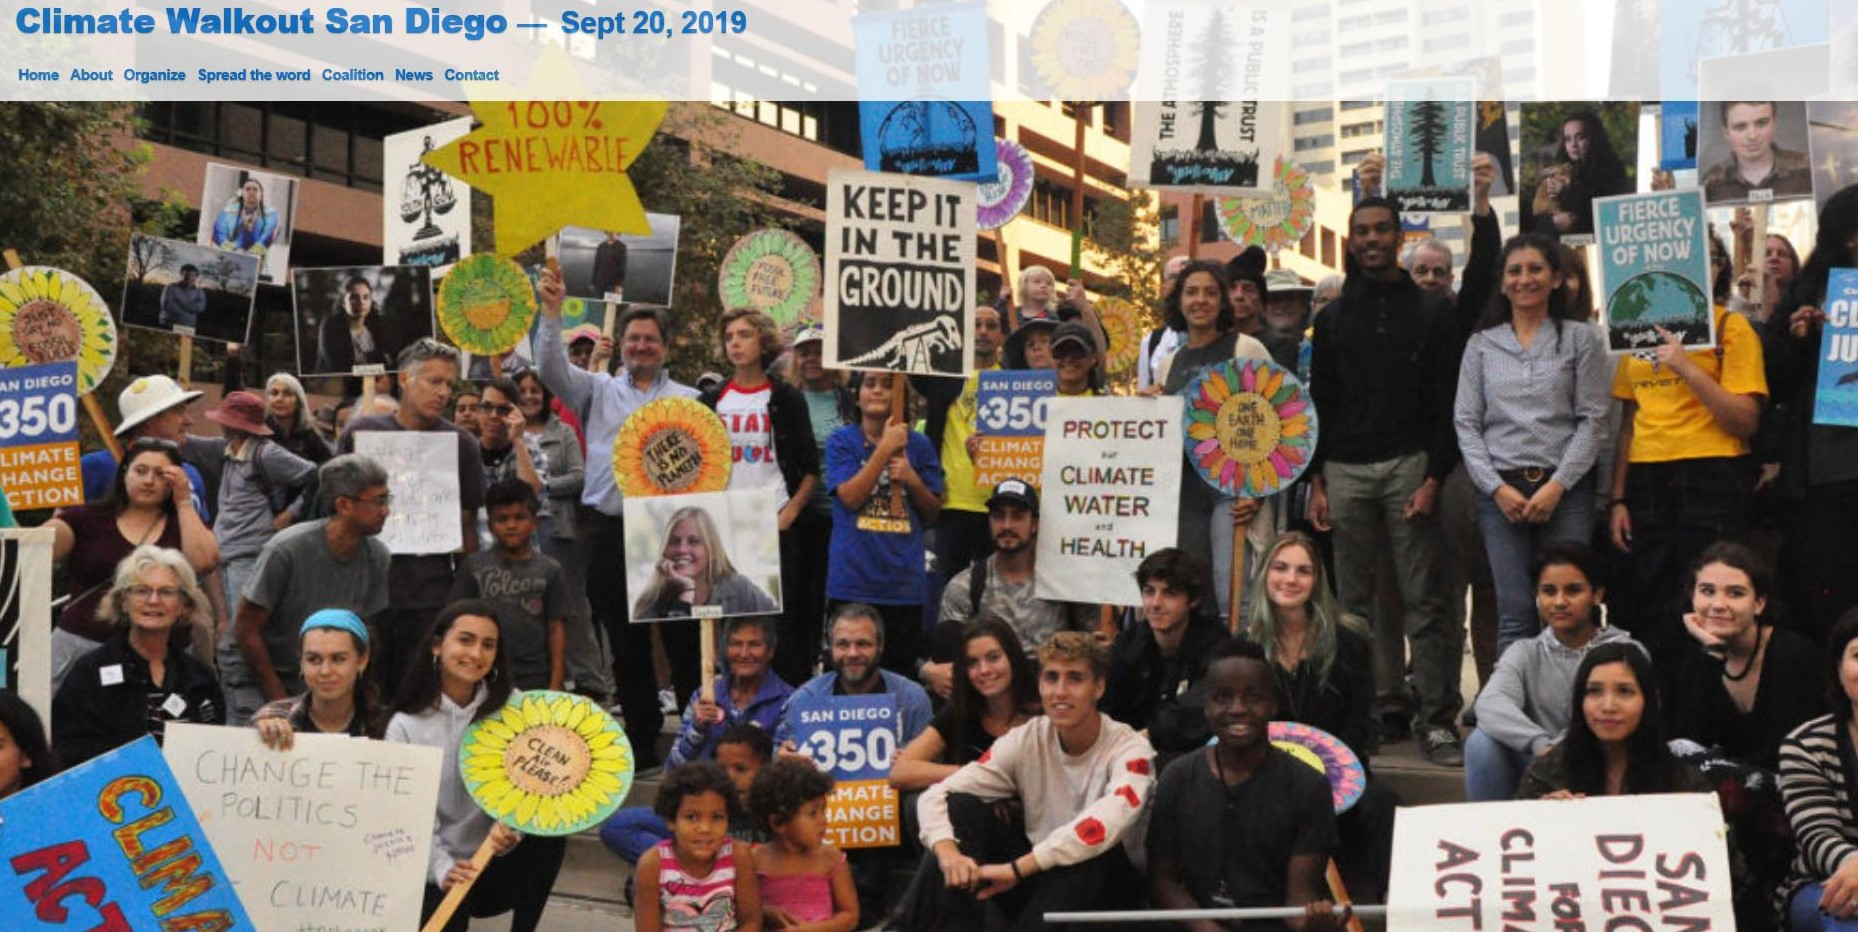 Peace Week & Climate Change in the face of extreme violence